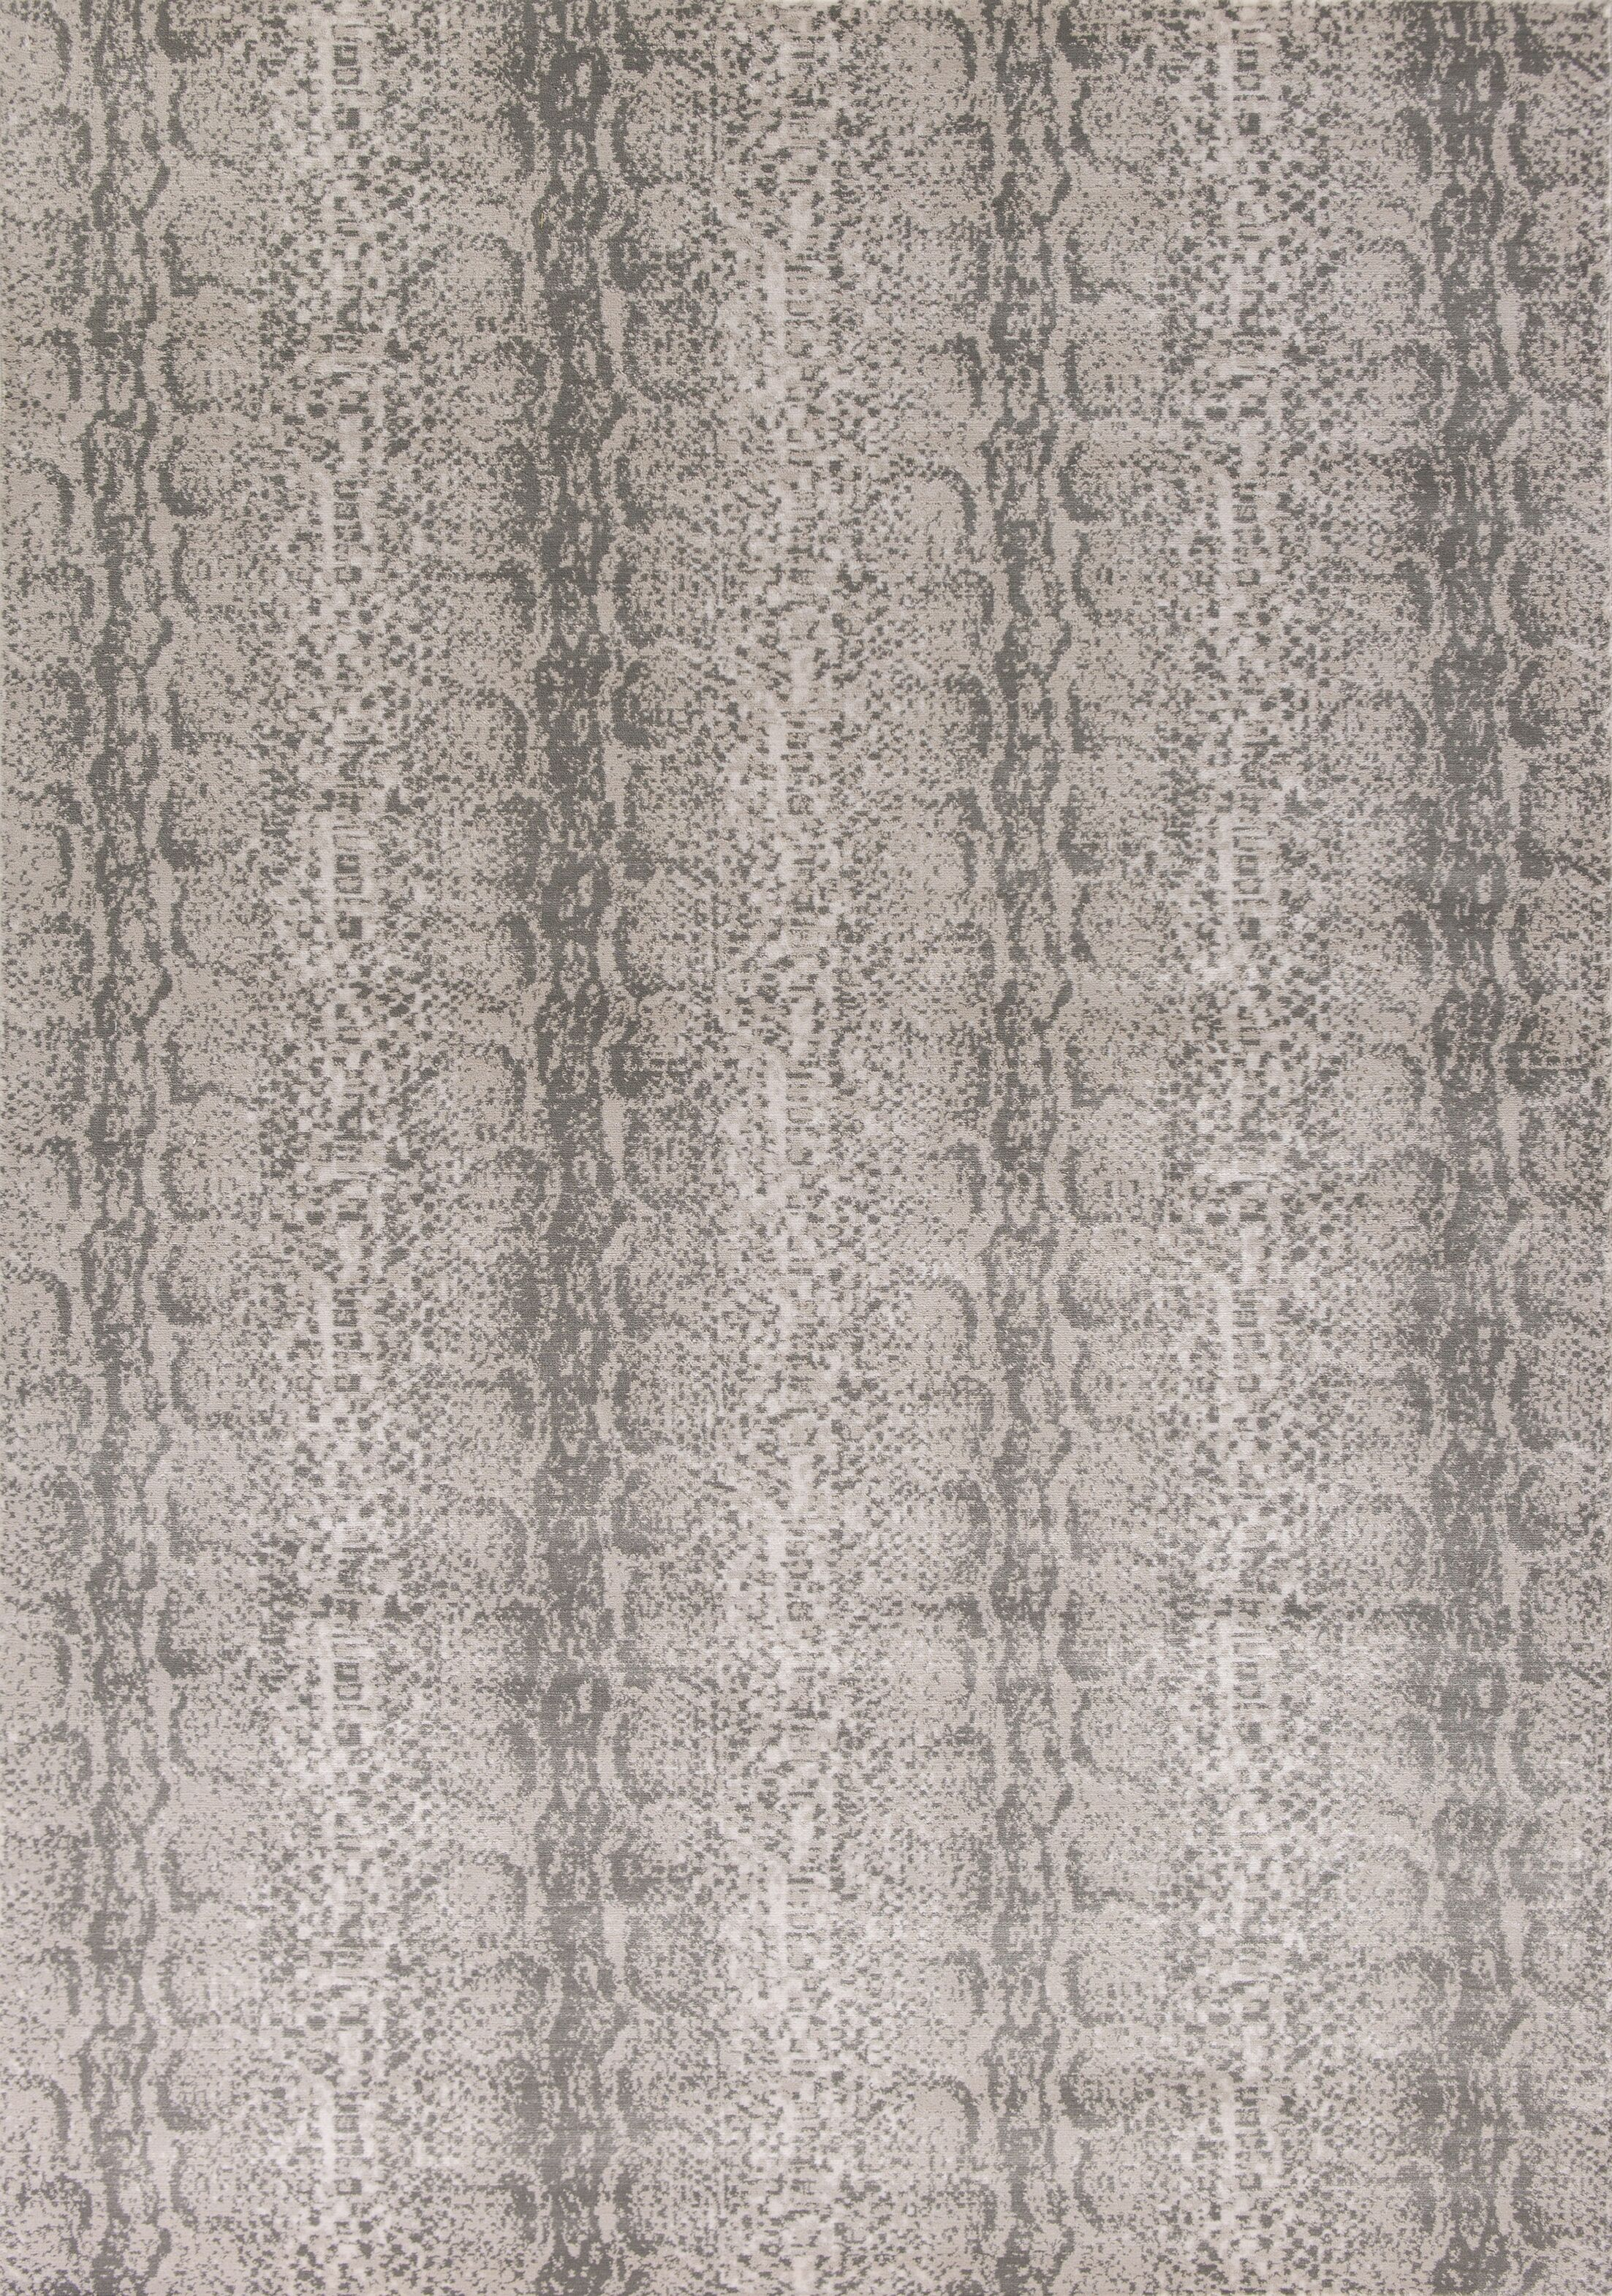 Deering Taupe/Gray Area Rug Rug Size: Rectangle 7'10